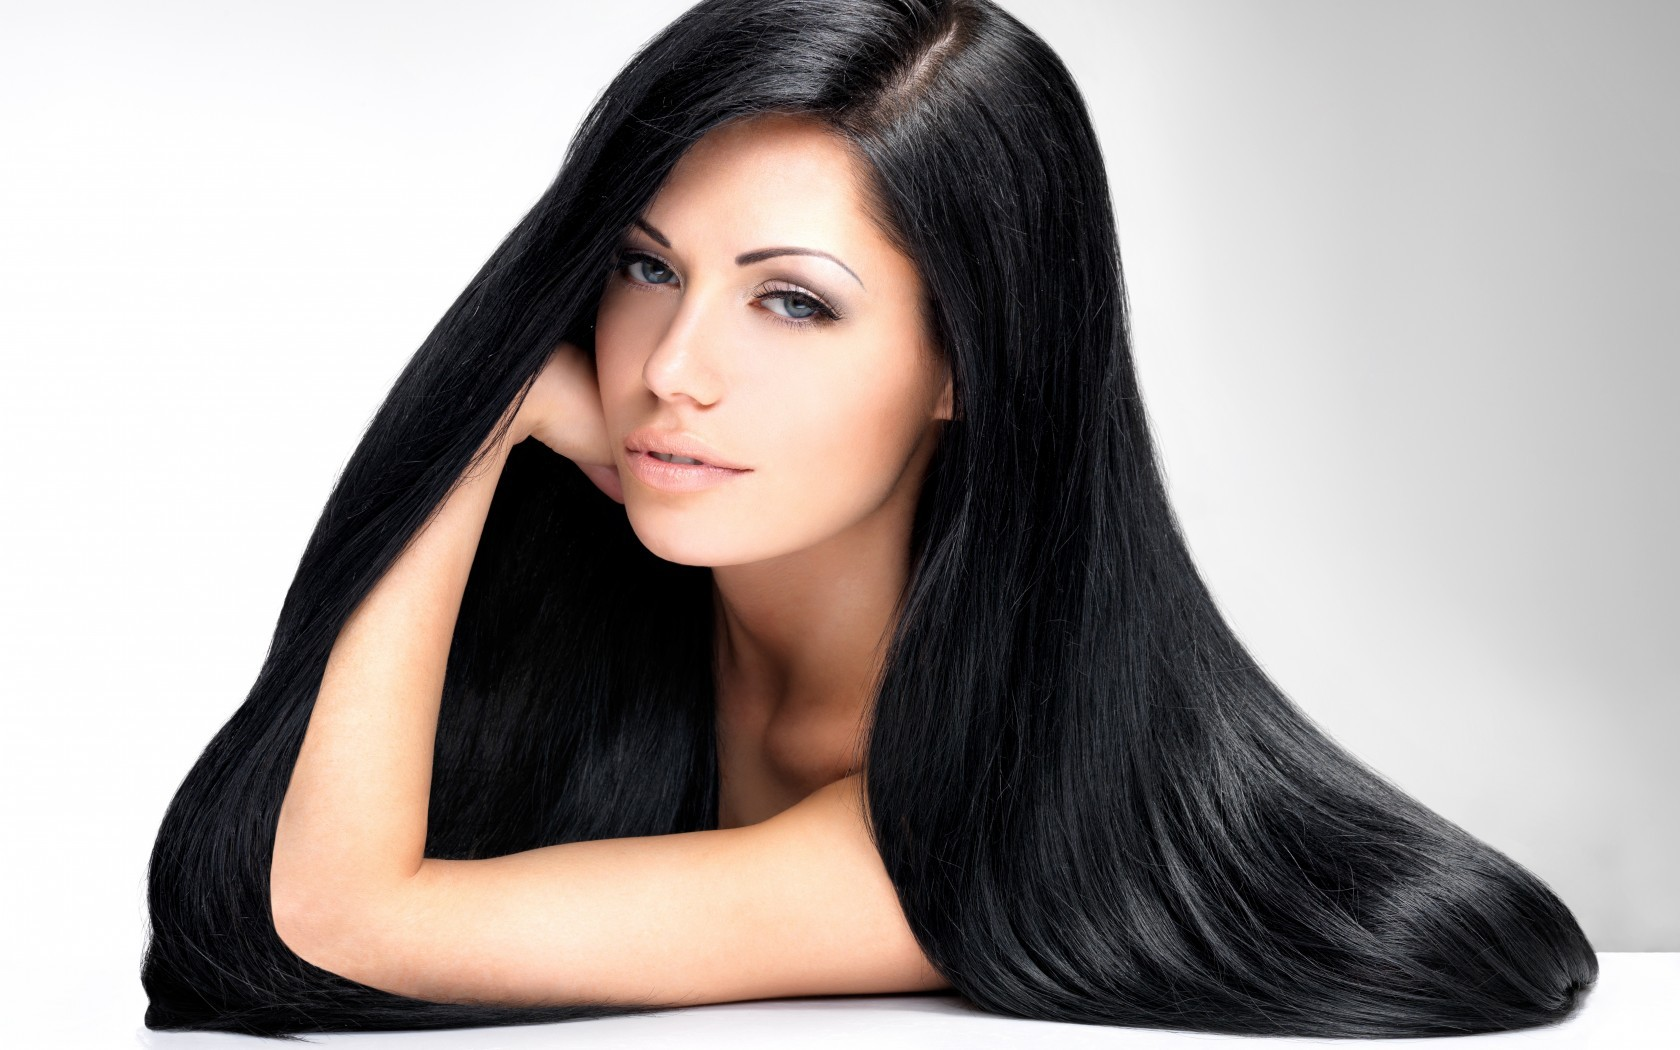 60% off Rs 8999 only for LOreal Hair Xtenso / Rebounding / keratin permanent straightening / permanent blowdry + Hair Cut + LOreal Hair Treatment + Head & Shoulder Massage at LeReve Beauty Lounge Gulberg, Lahore.